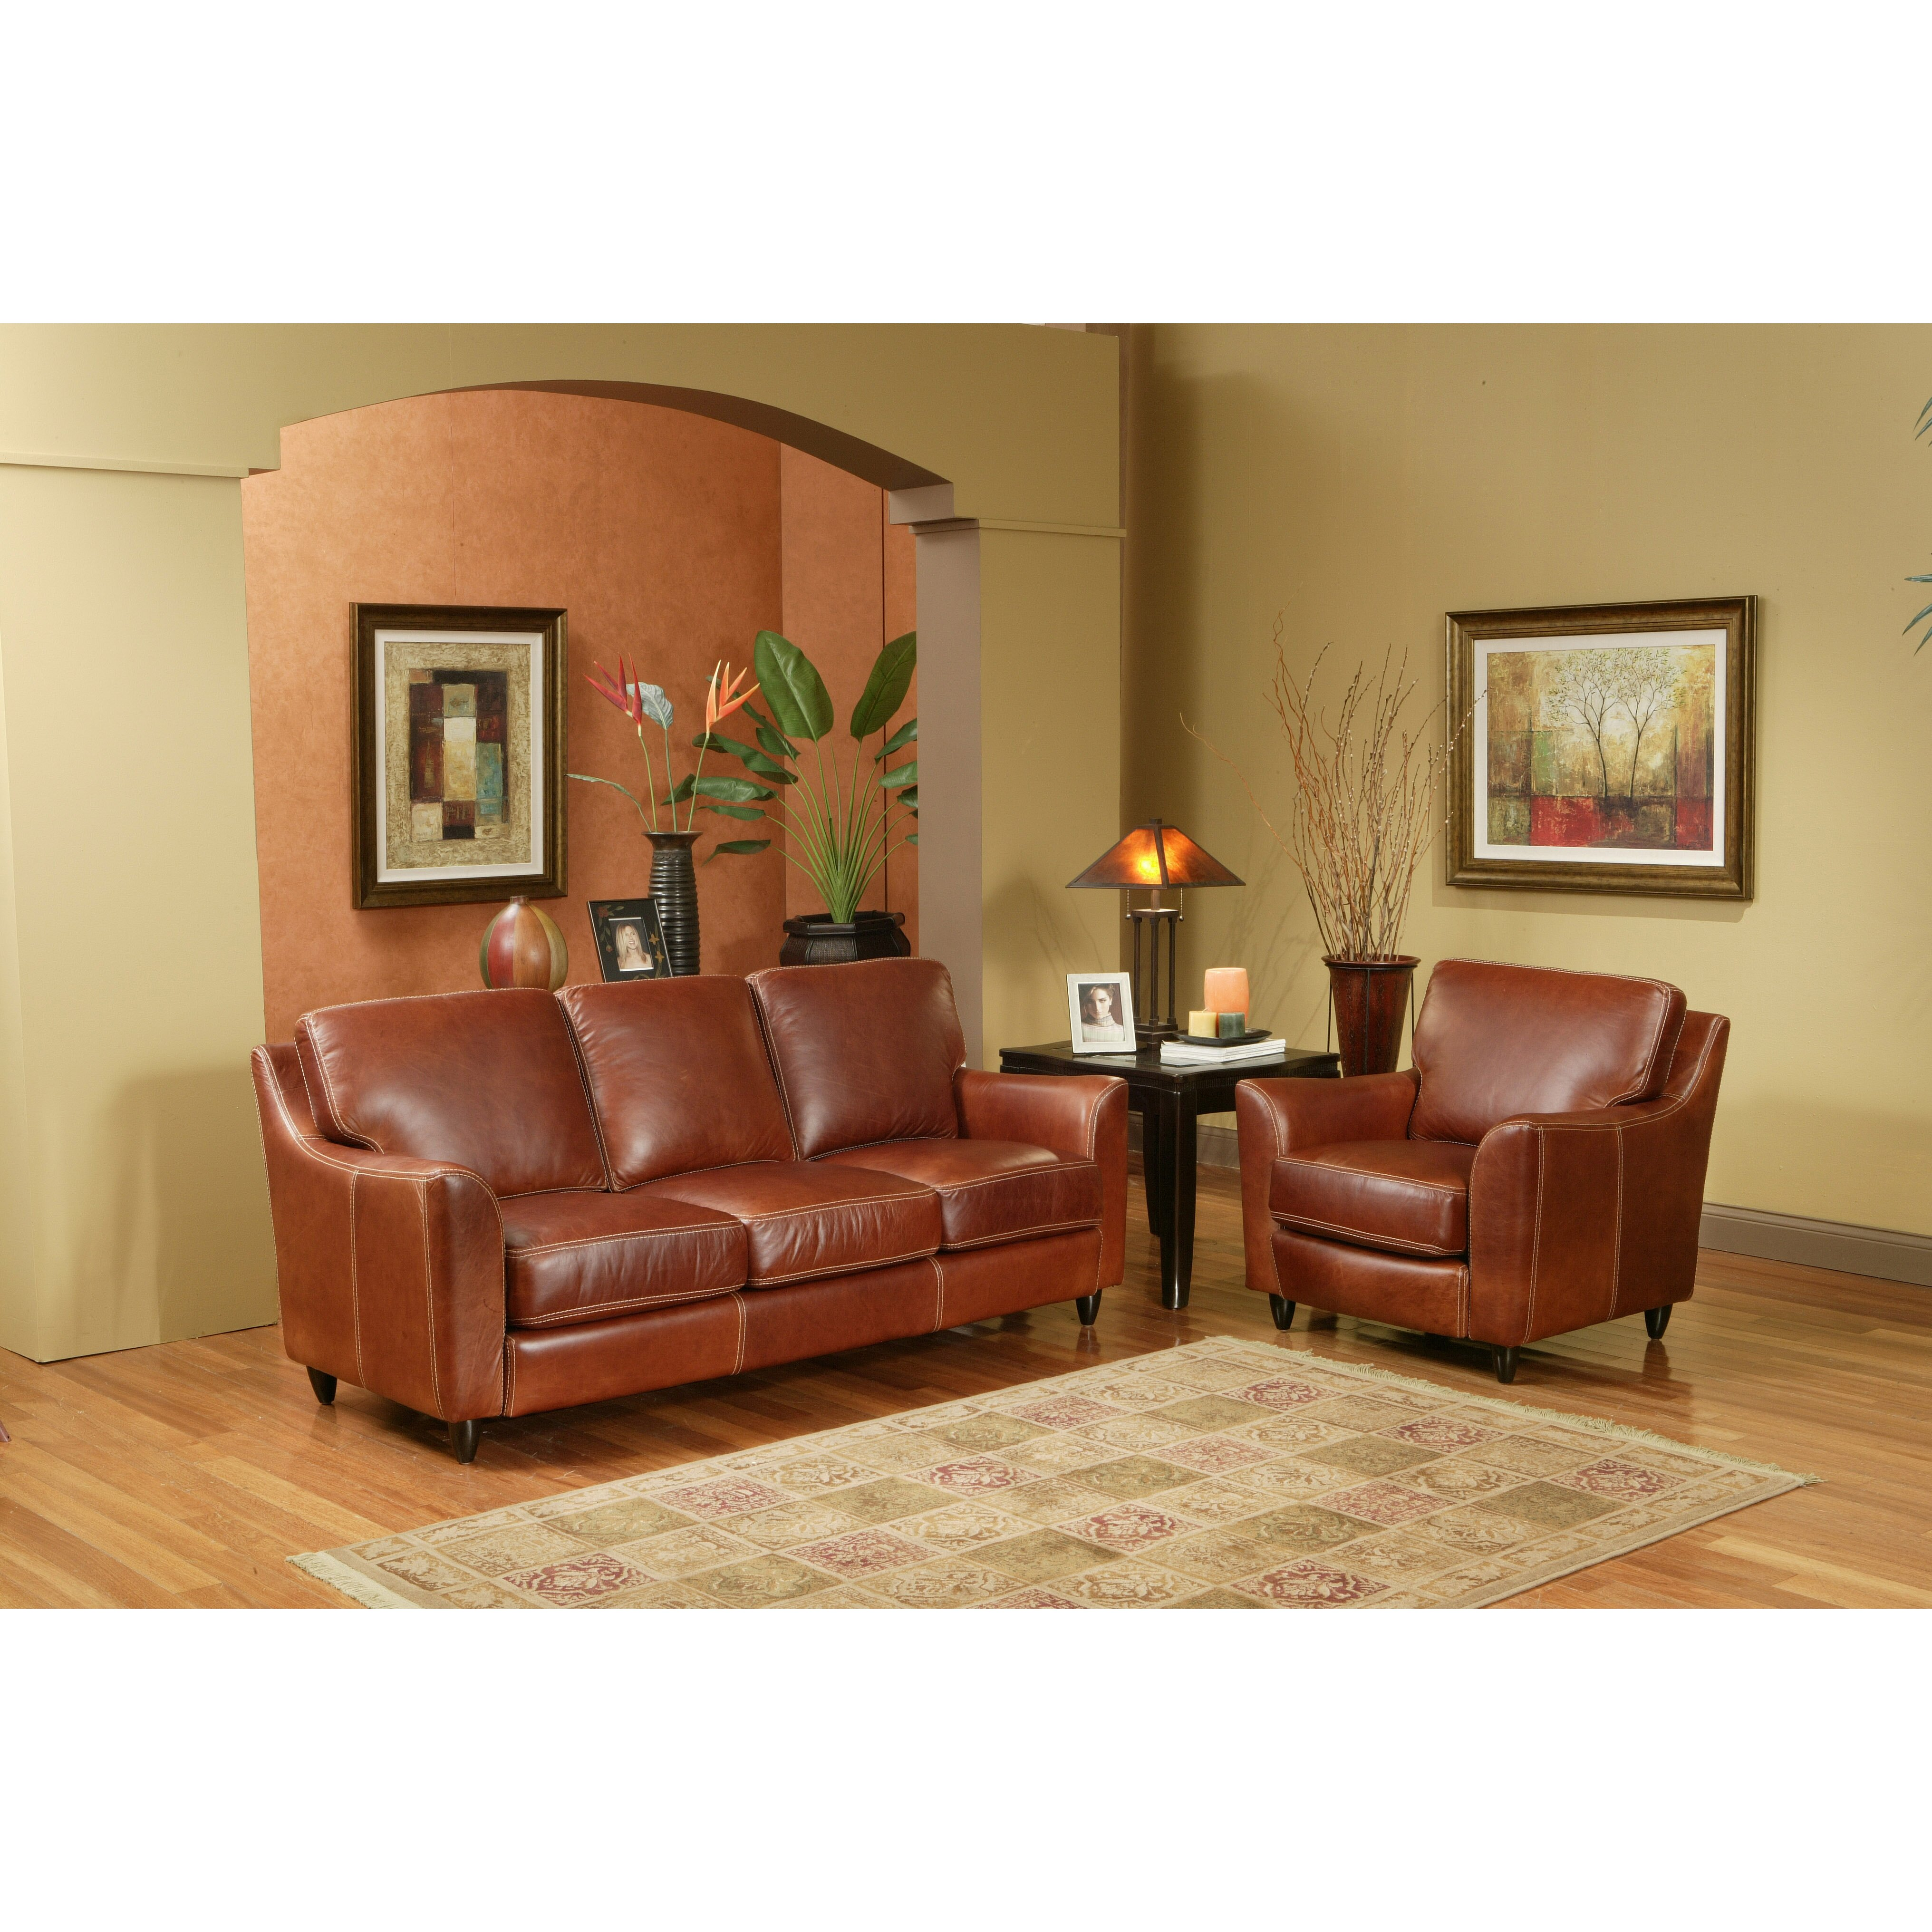 Omnia Leather Great Texas Leather Sofa Amp Reviews Wayfair